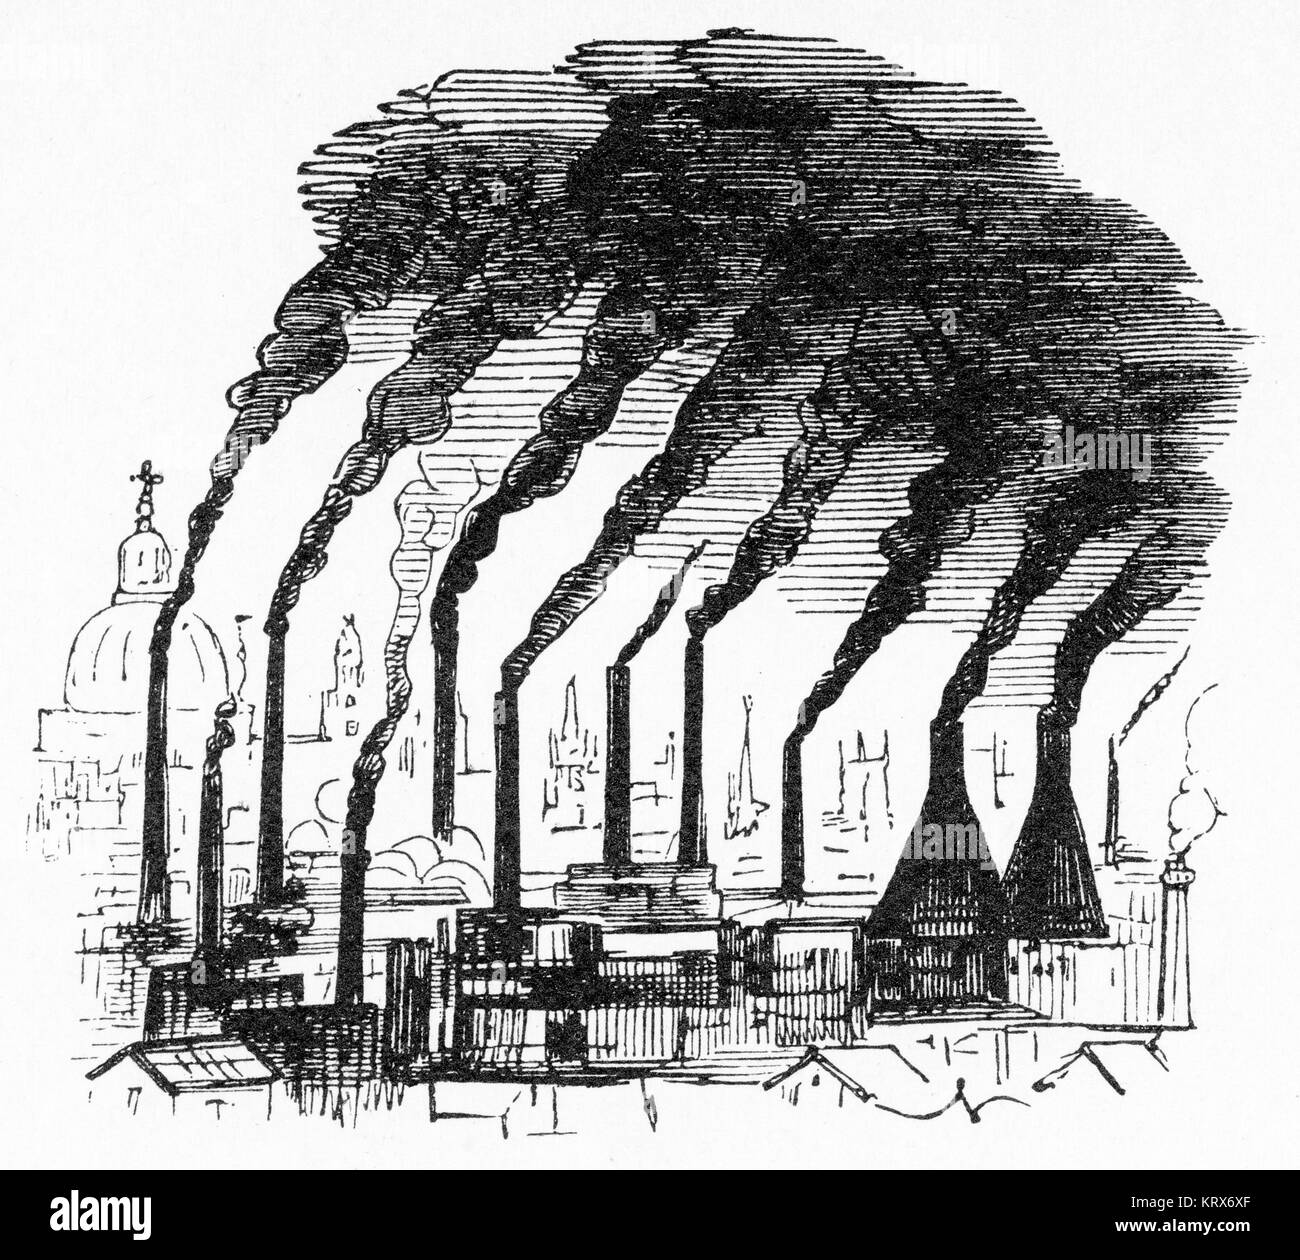 Engraving of Victorian England skyline in London with coal-burning factory chimney stacks, from Punch magazine - Stock Image